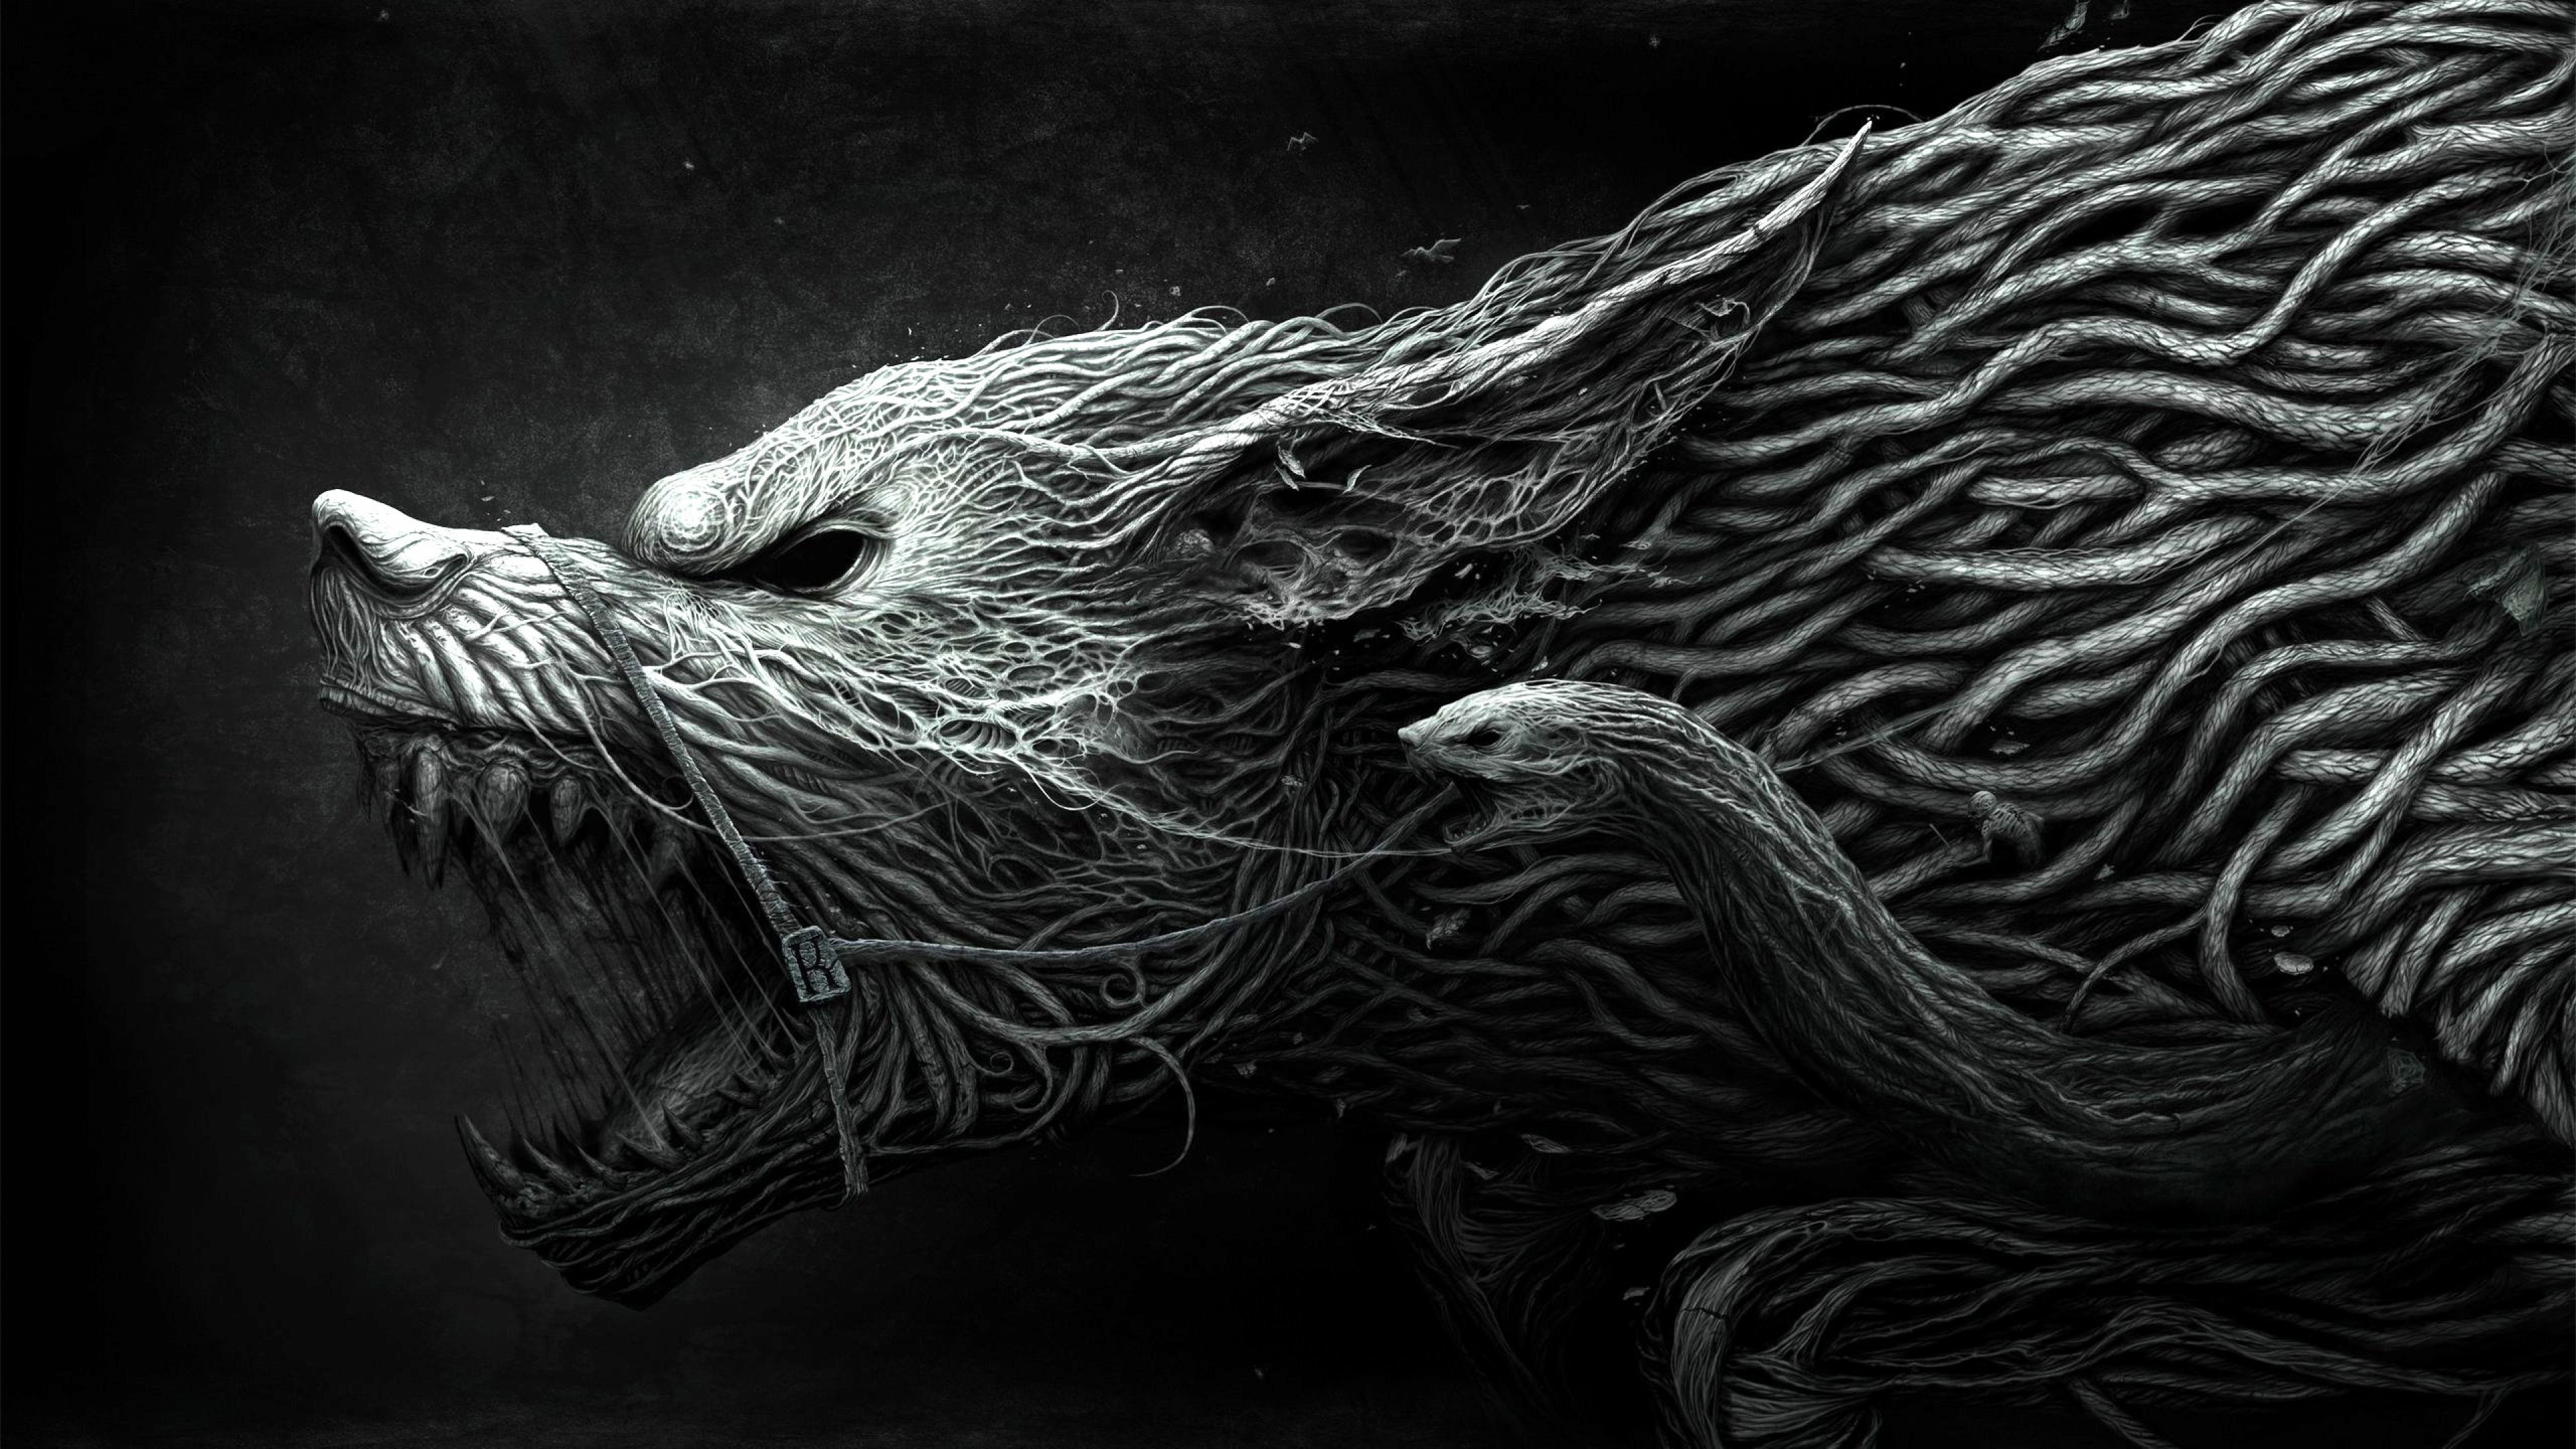 Wallpaper Wolf Hellhound art black and white dangerous noise 3840x2160